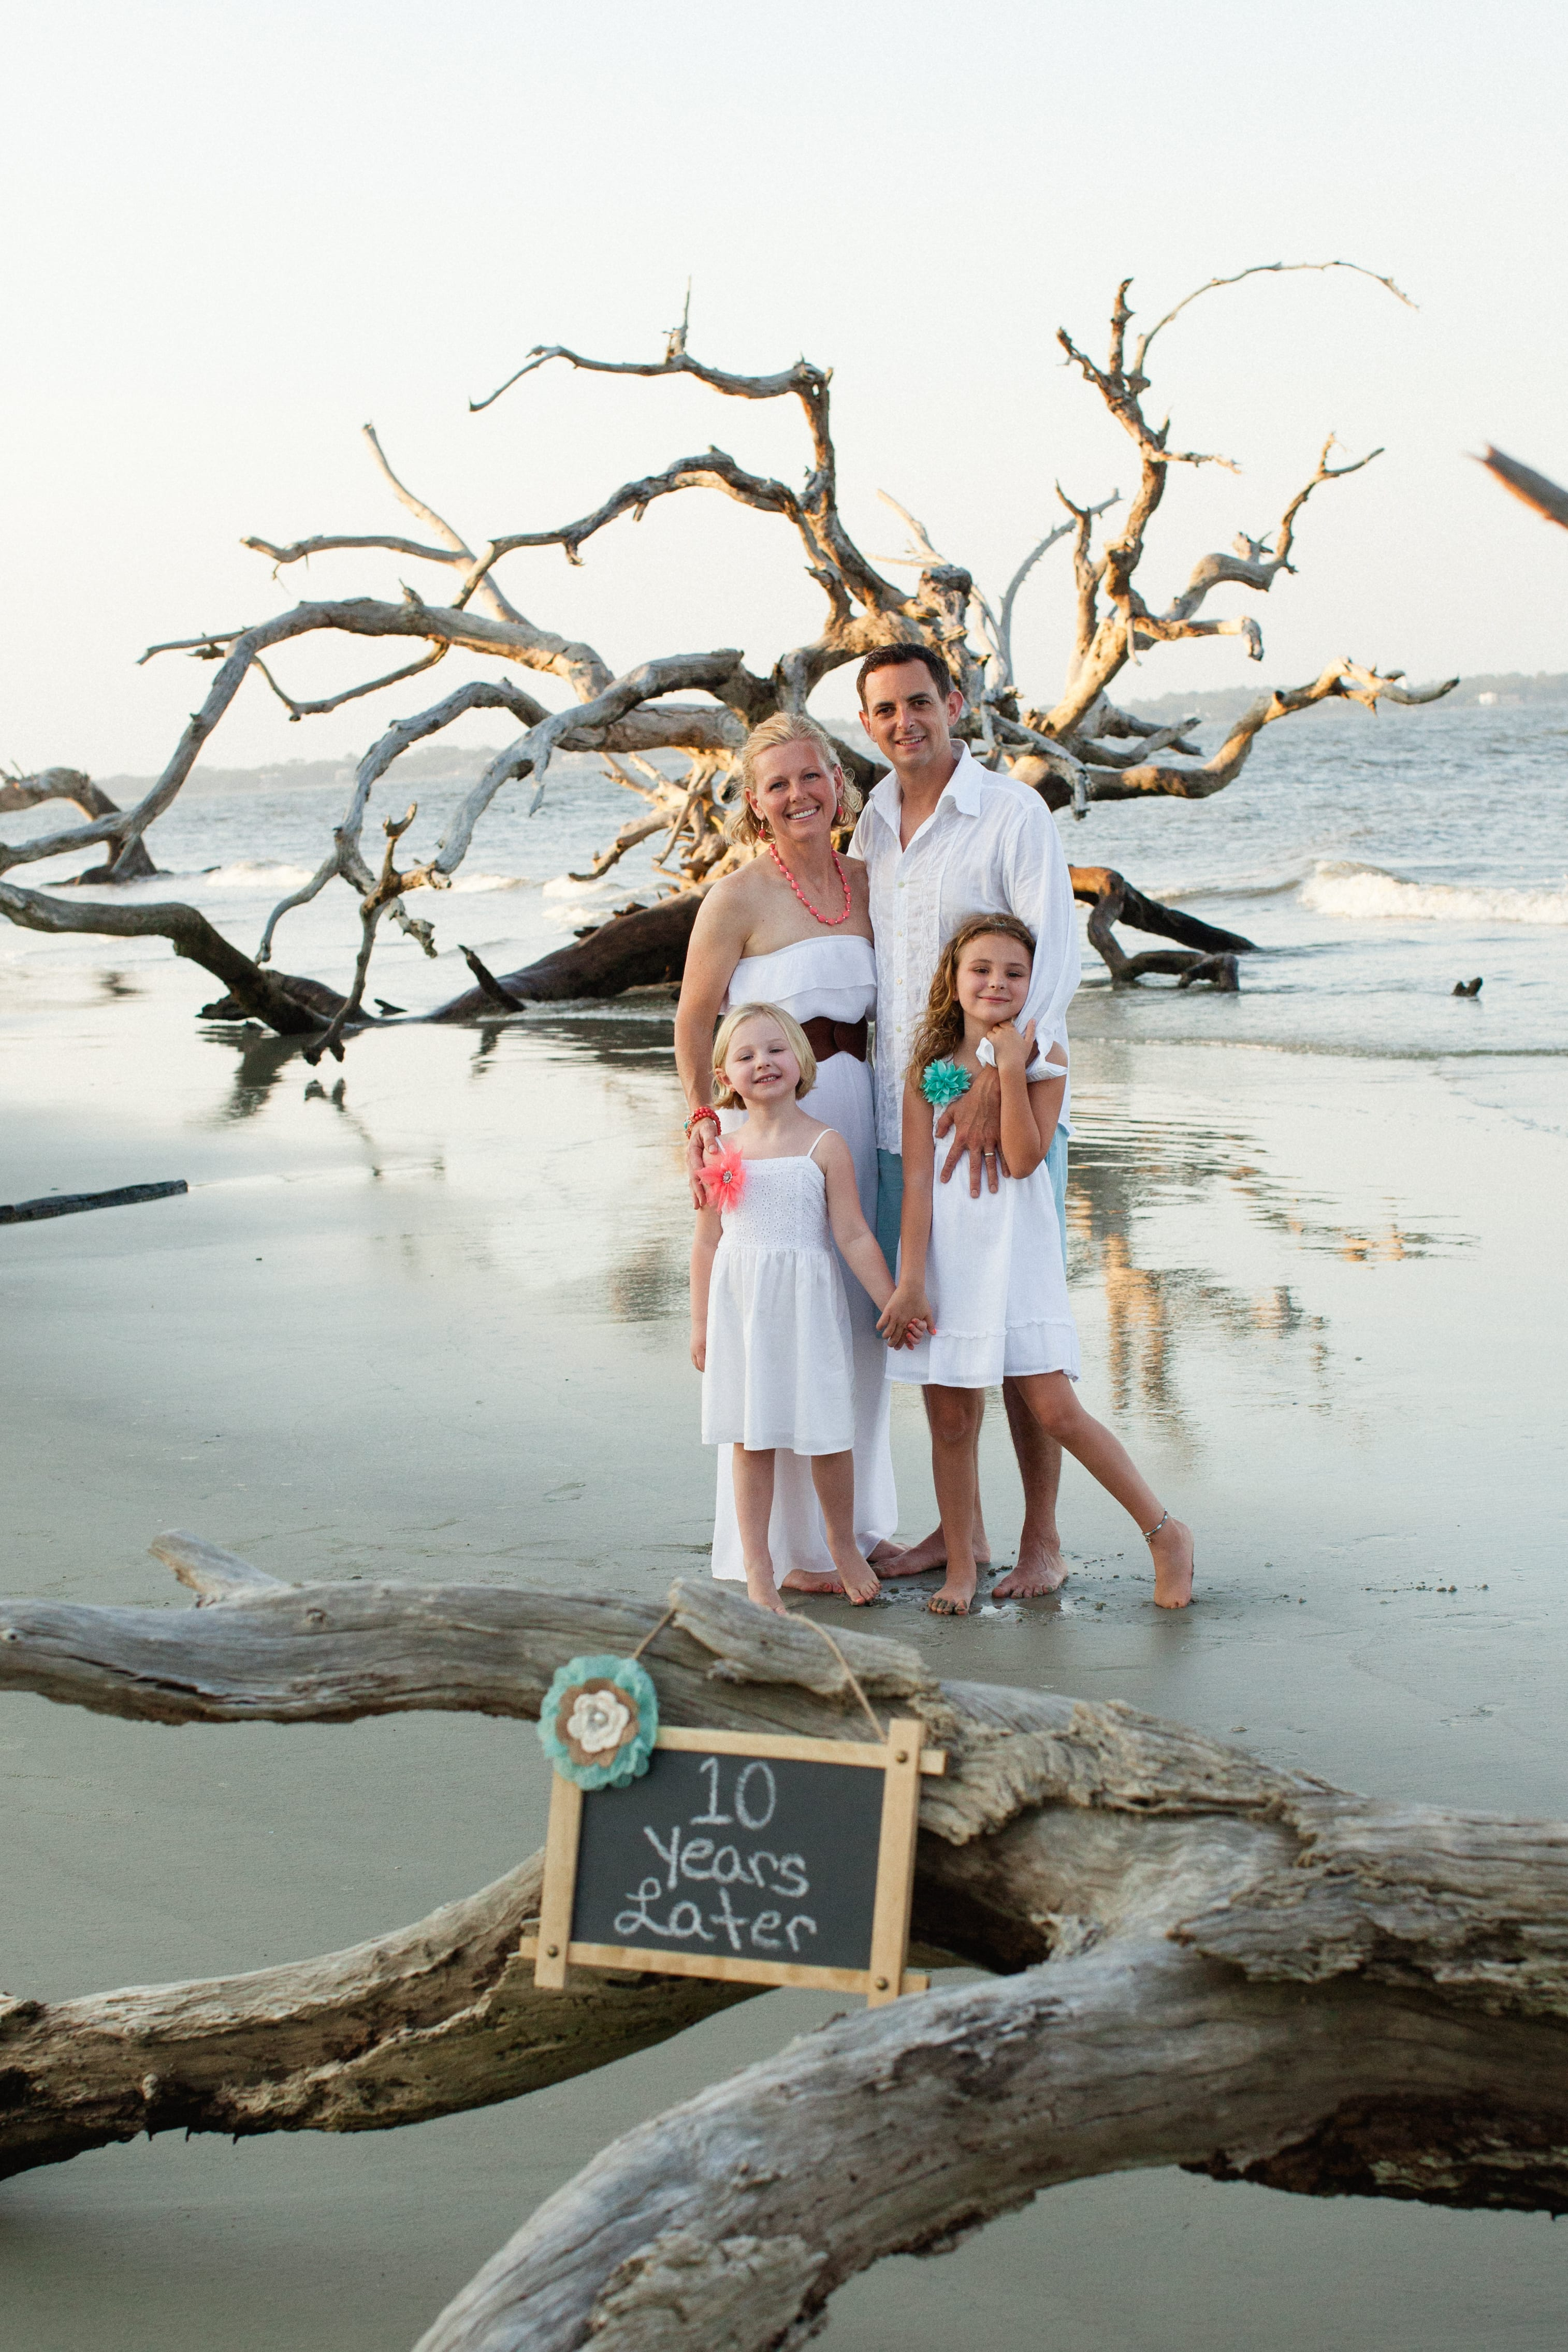 Jekyll Island Family Portrait Angela Hopper Photography